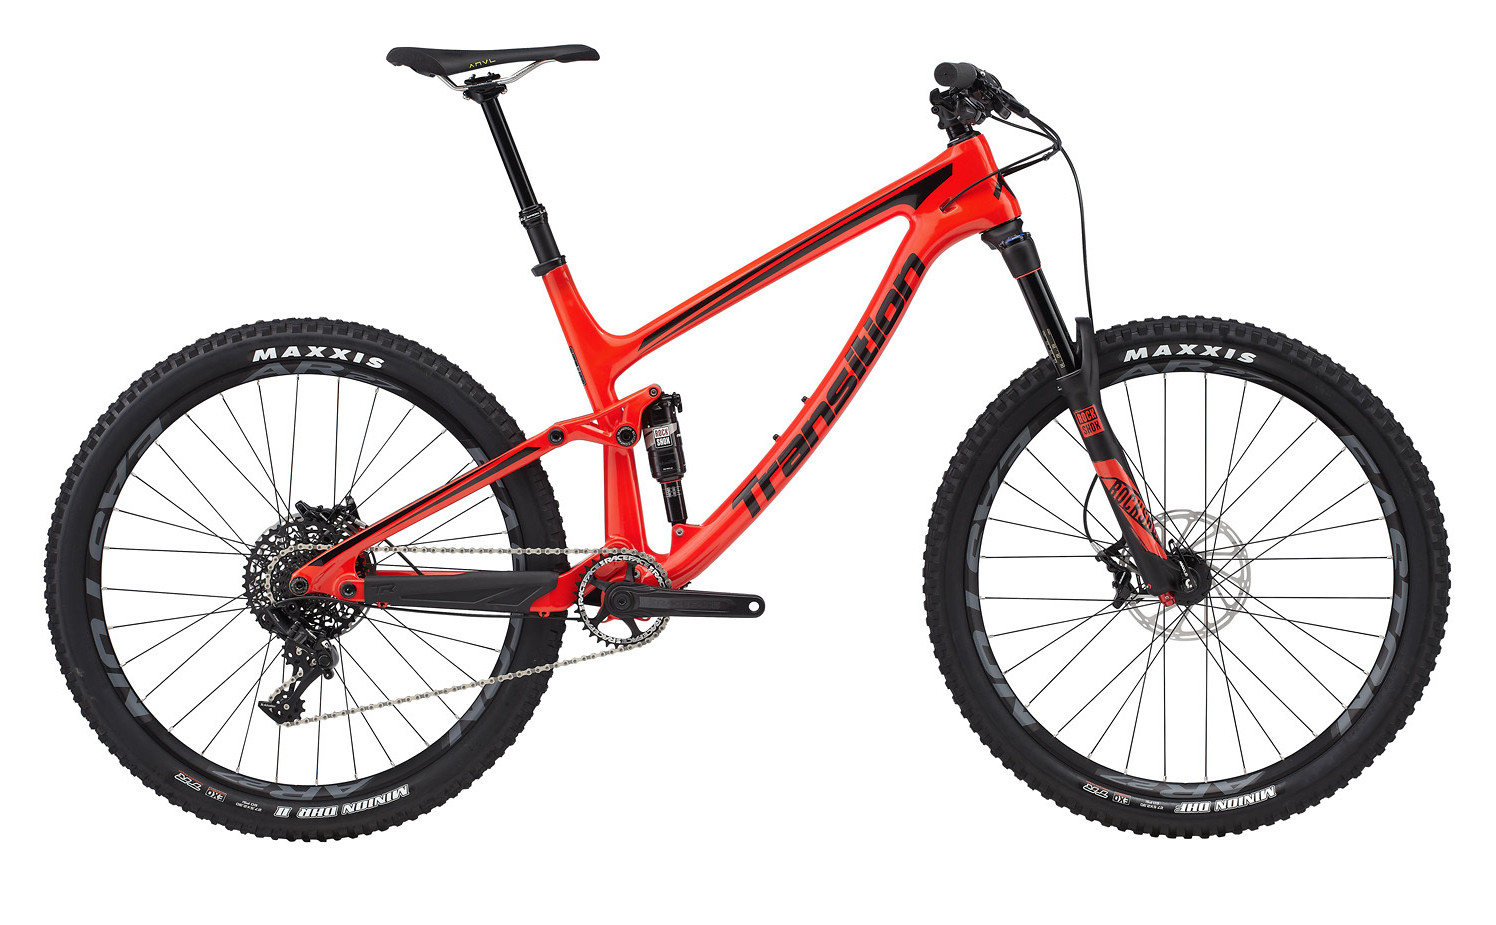 2017 Transition Scout Carbon #3  2017 Transition Scout Carbon #3 (Blood Orange)